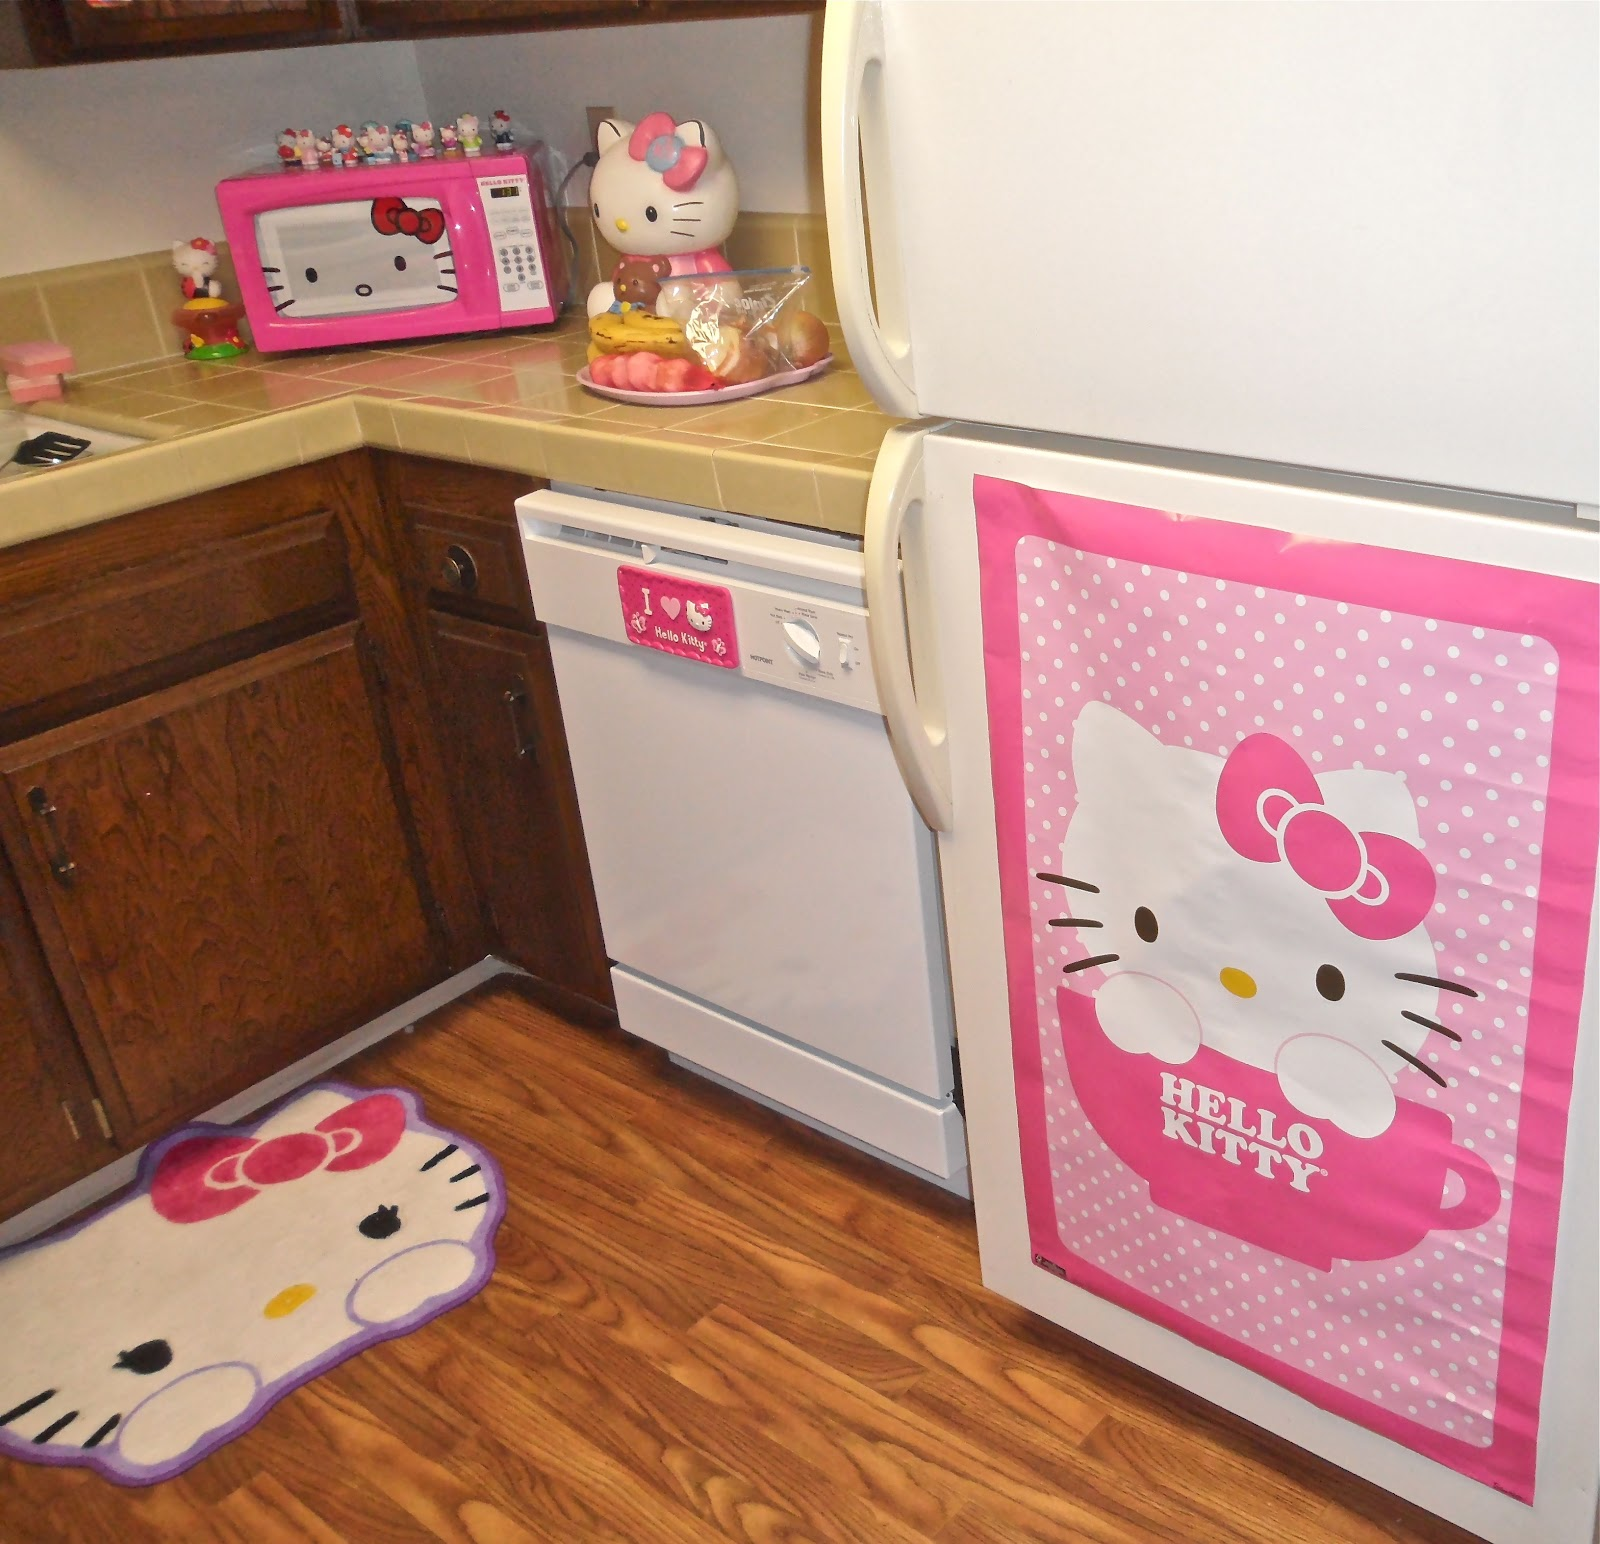 Okashi Yummy: Hello Kitty kitchen!!!